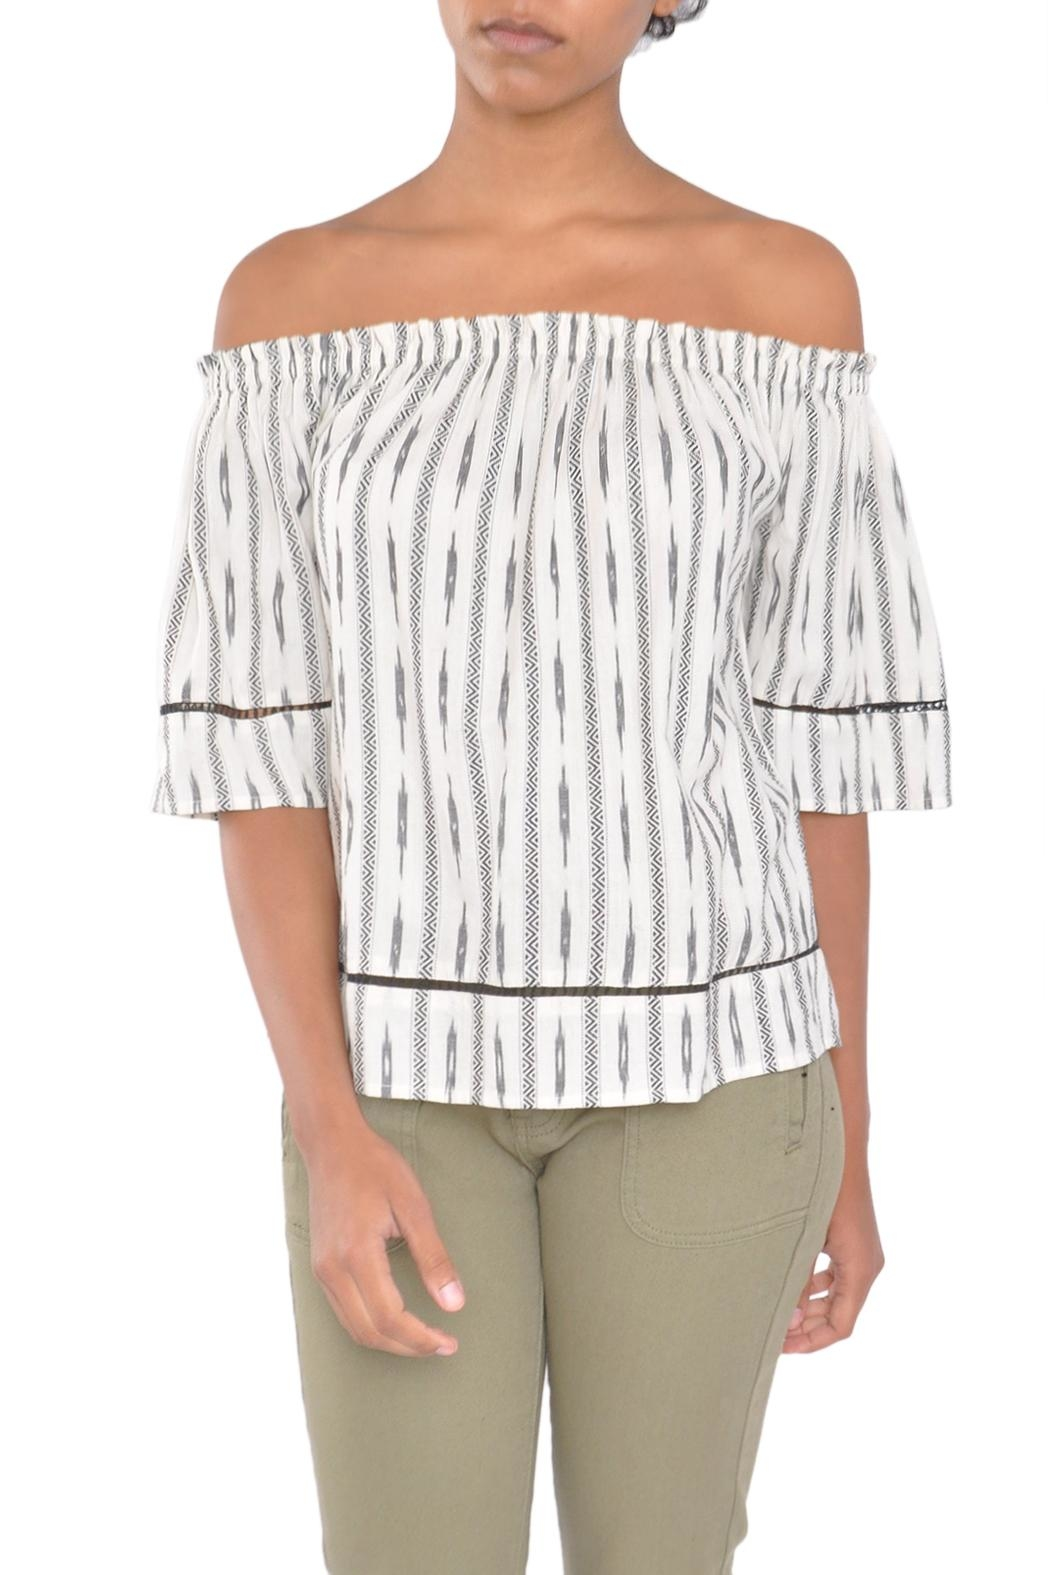 4our Dreamers Ikat Off-Shoulder Top - Main Image